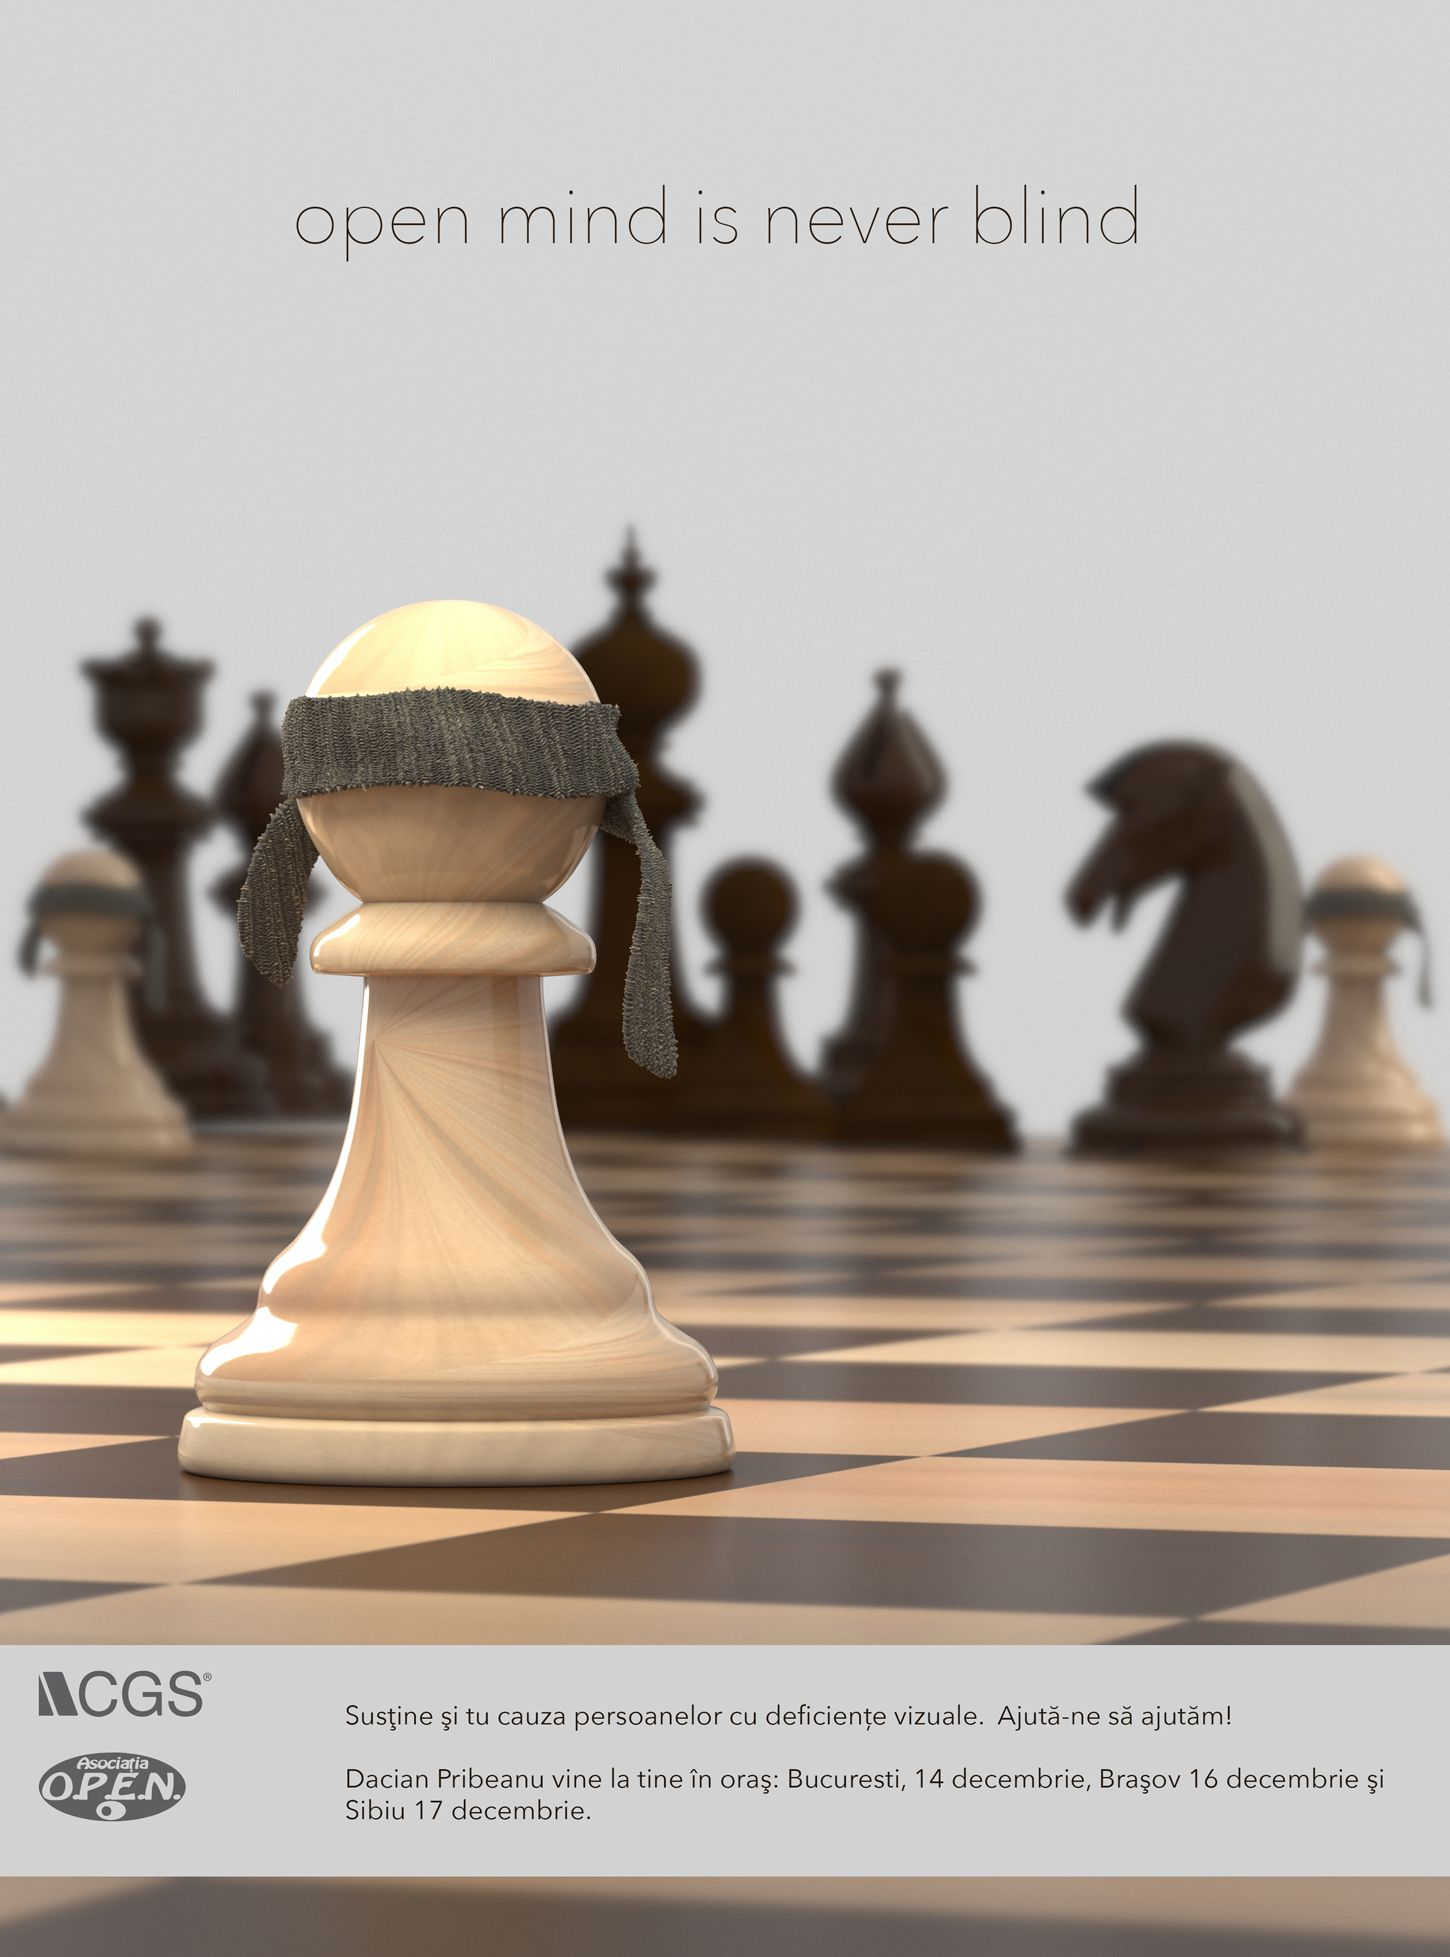 Open mind is never blind poster 3d layout design chess contest project description biocorpaavc Gallery